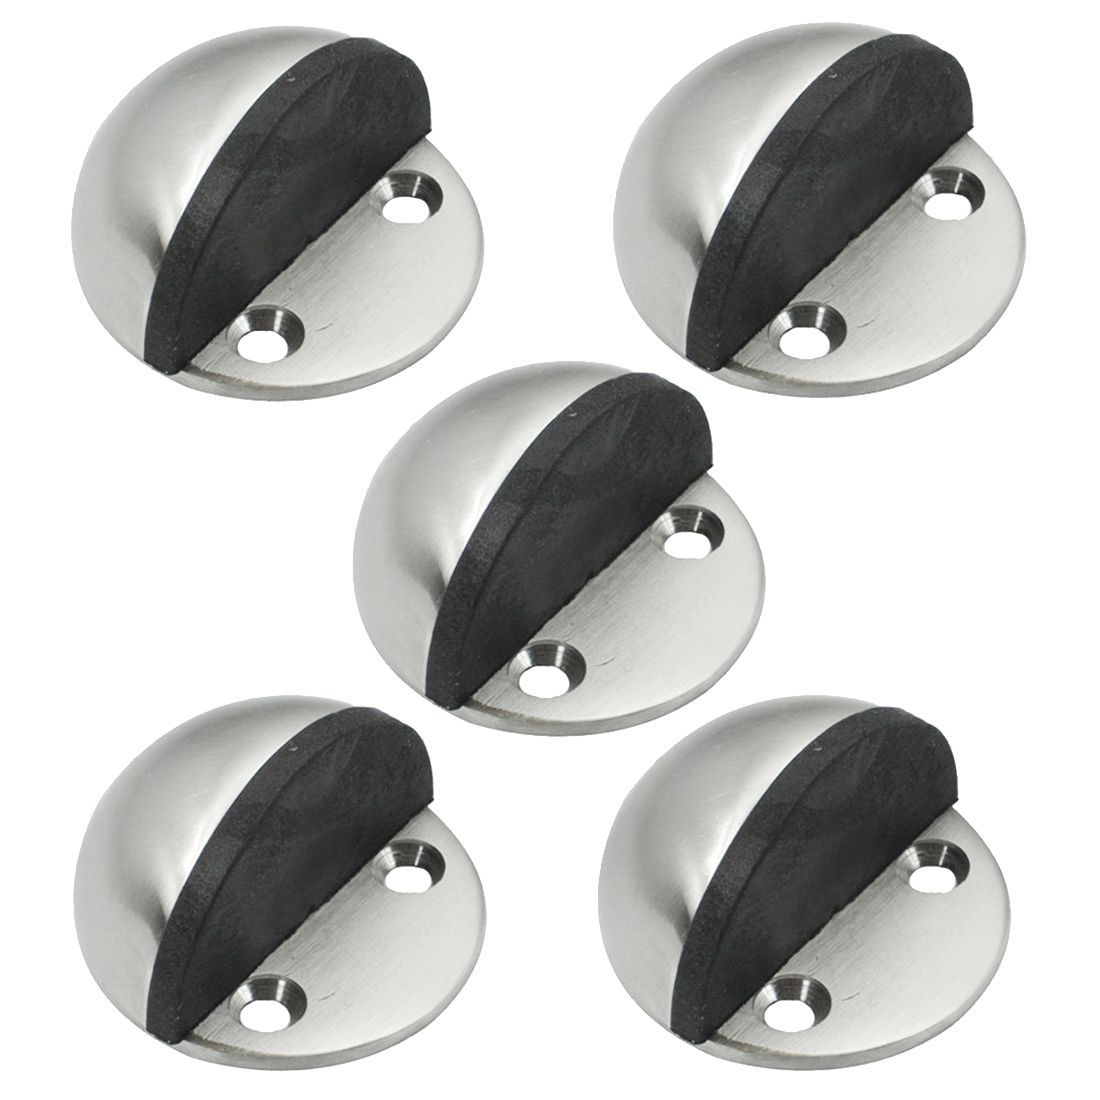 цена на 5Pcs Stainless Steel Floor Door Stopper Stops Screw Mount Pack Brushed Door Holders Catch Floor Mounted Door stop Door Hardware